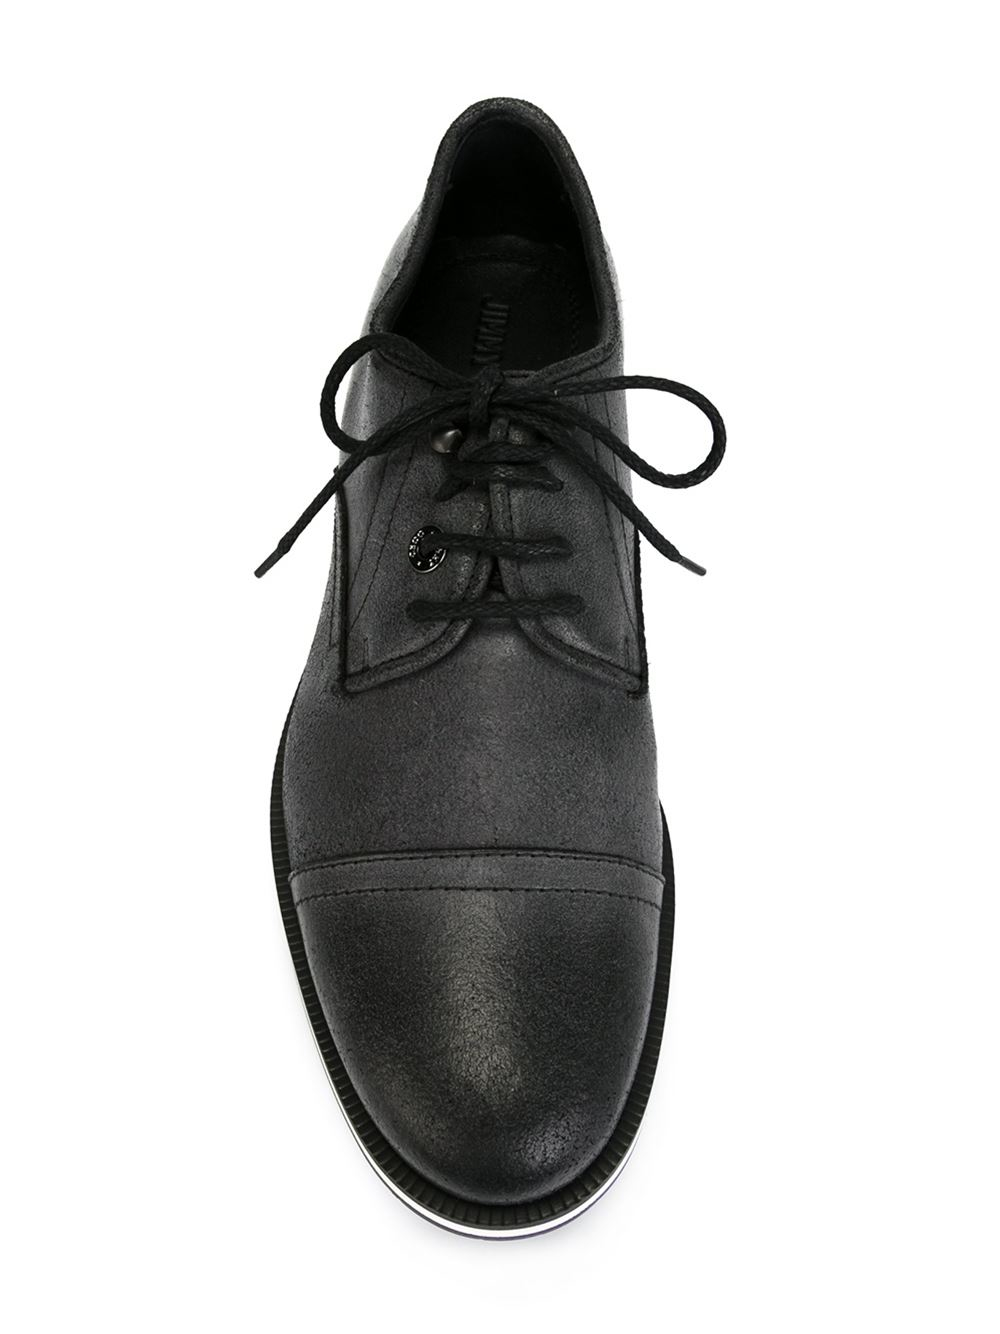 jimmy choo stewart lace up shoe in black for lyst